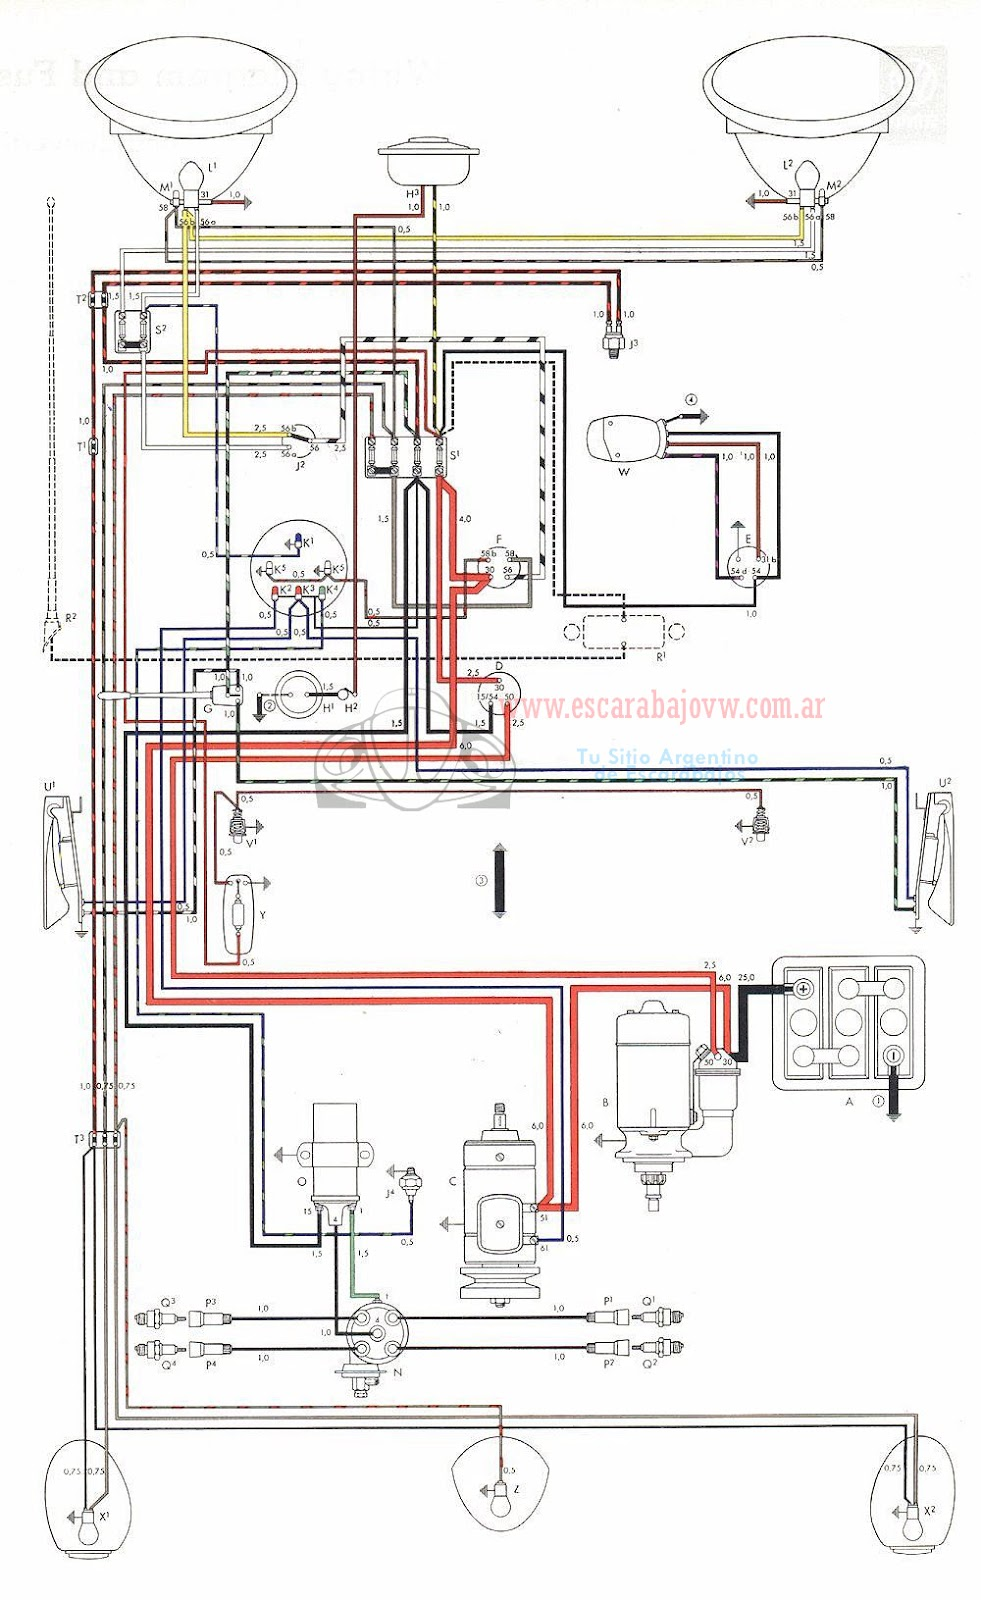 2012 chevrolet sonic wiring diagram 2014 chevrolet 1998 chevy malibu engine  diagram 2013 chevy malibu engine diagram